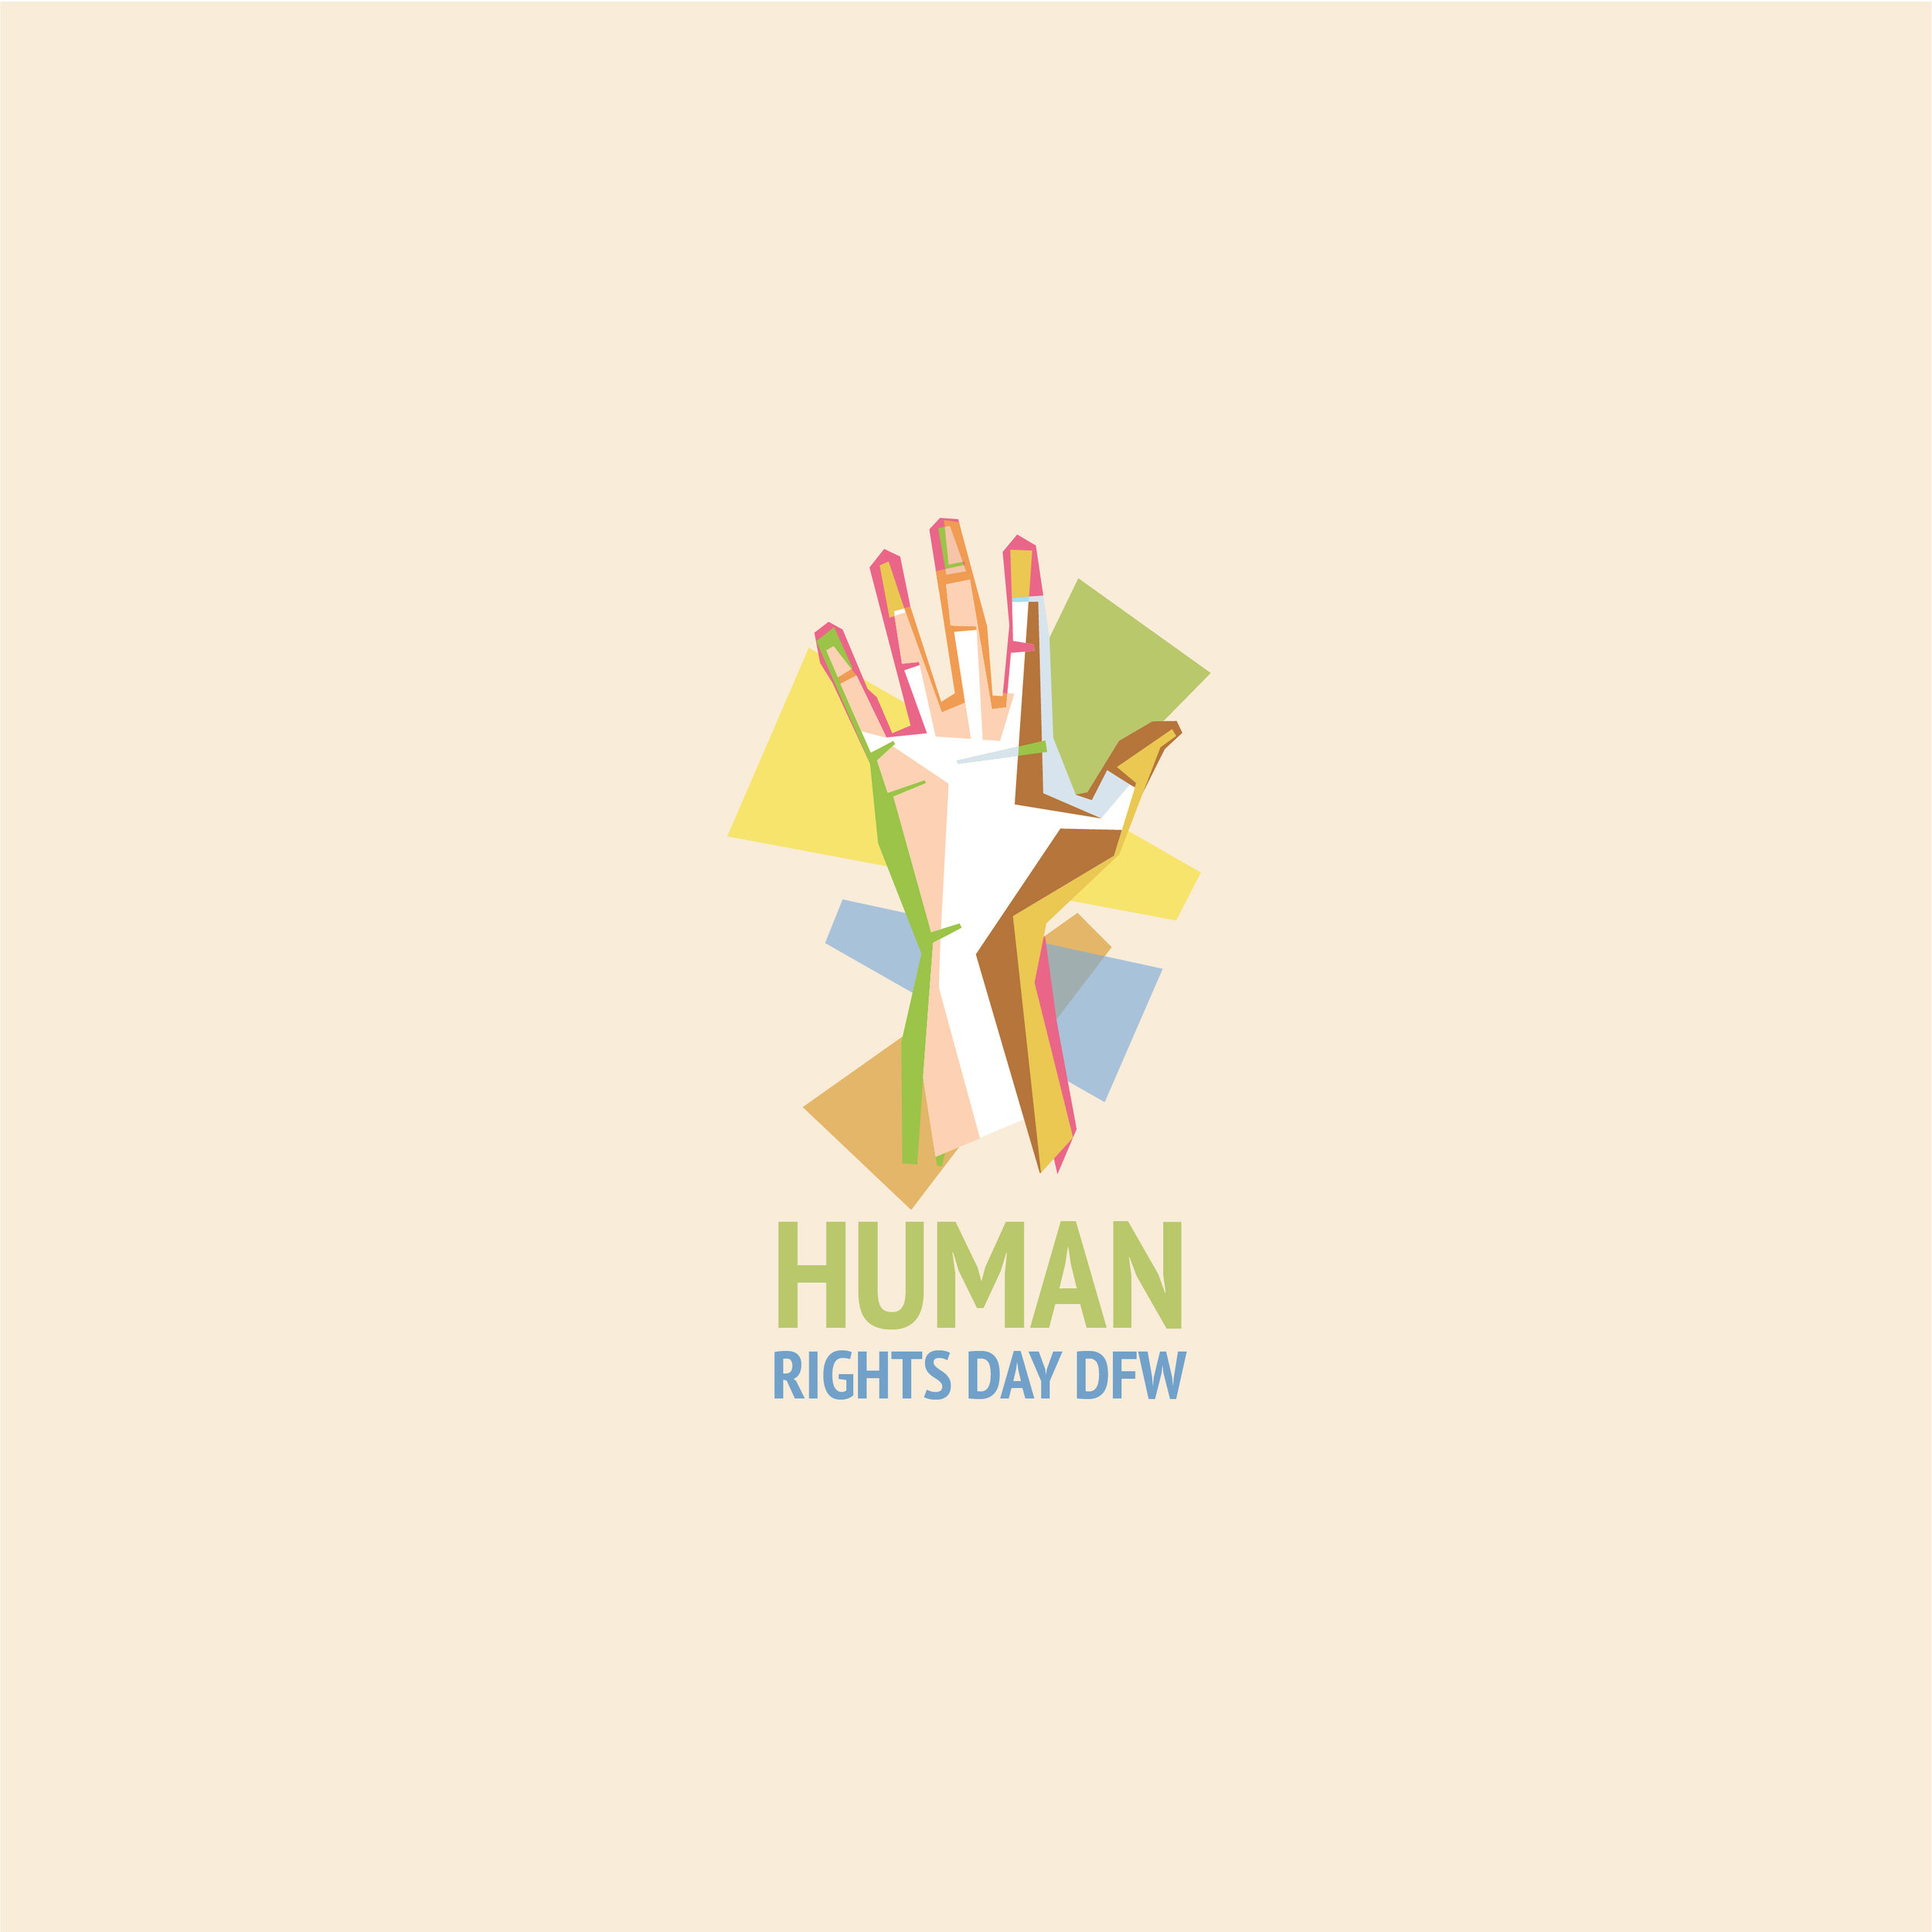 Human Rights Day DFW  Branding and website can be found  here